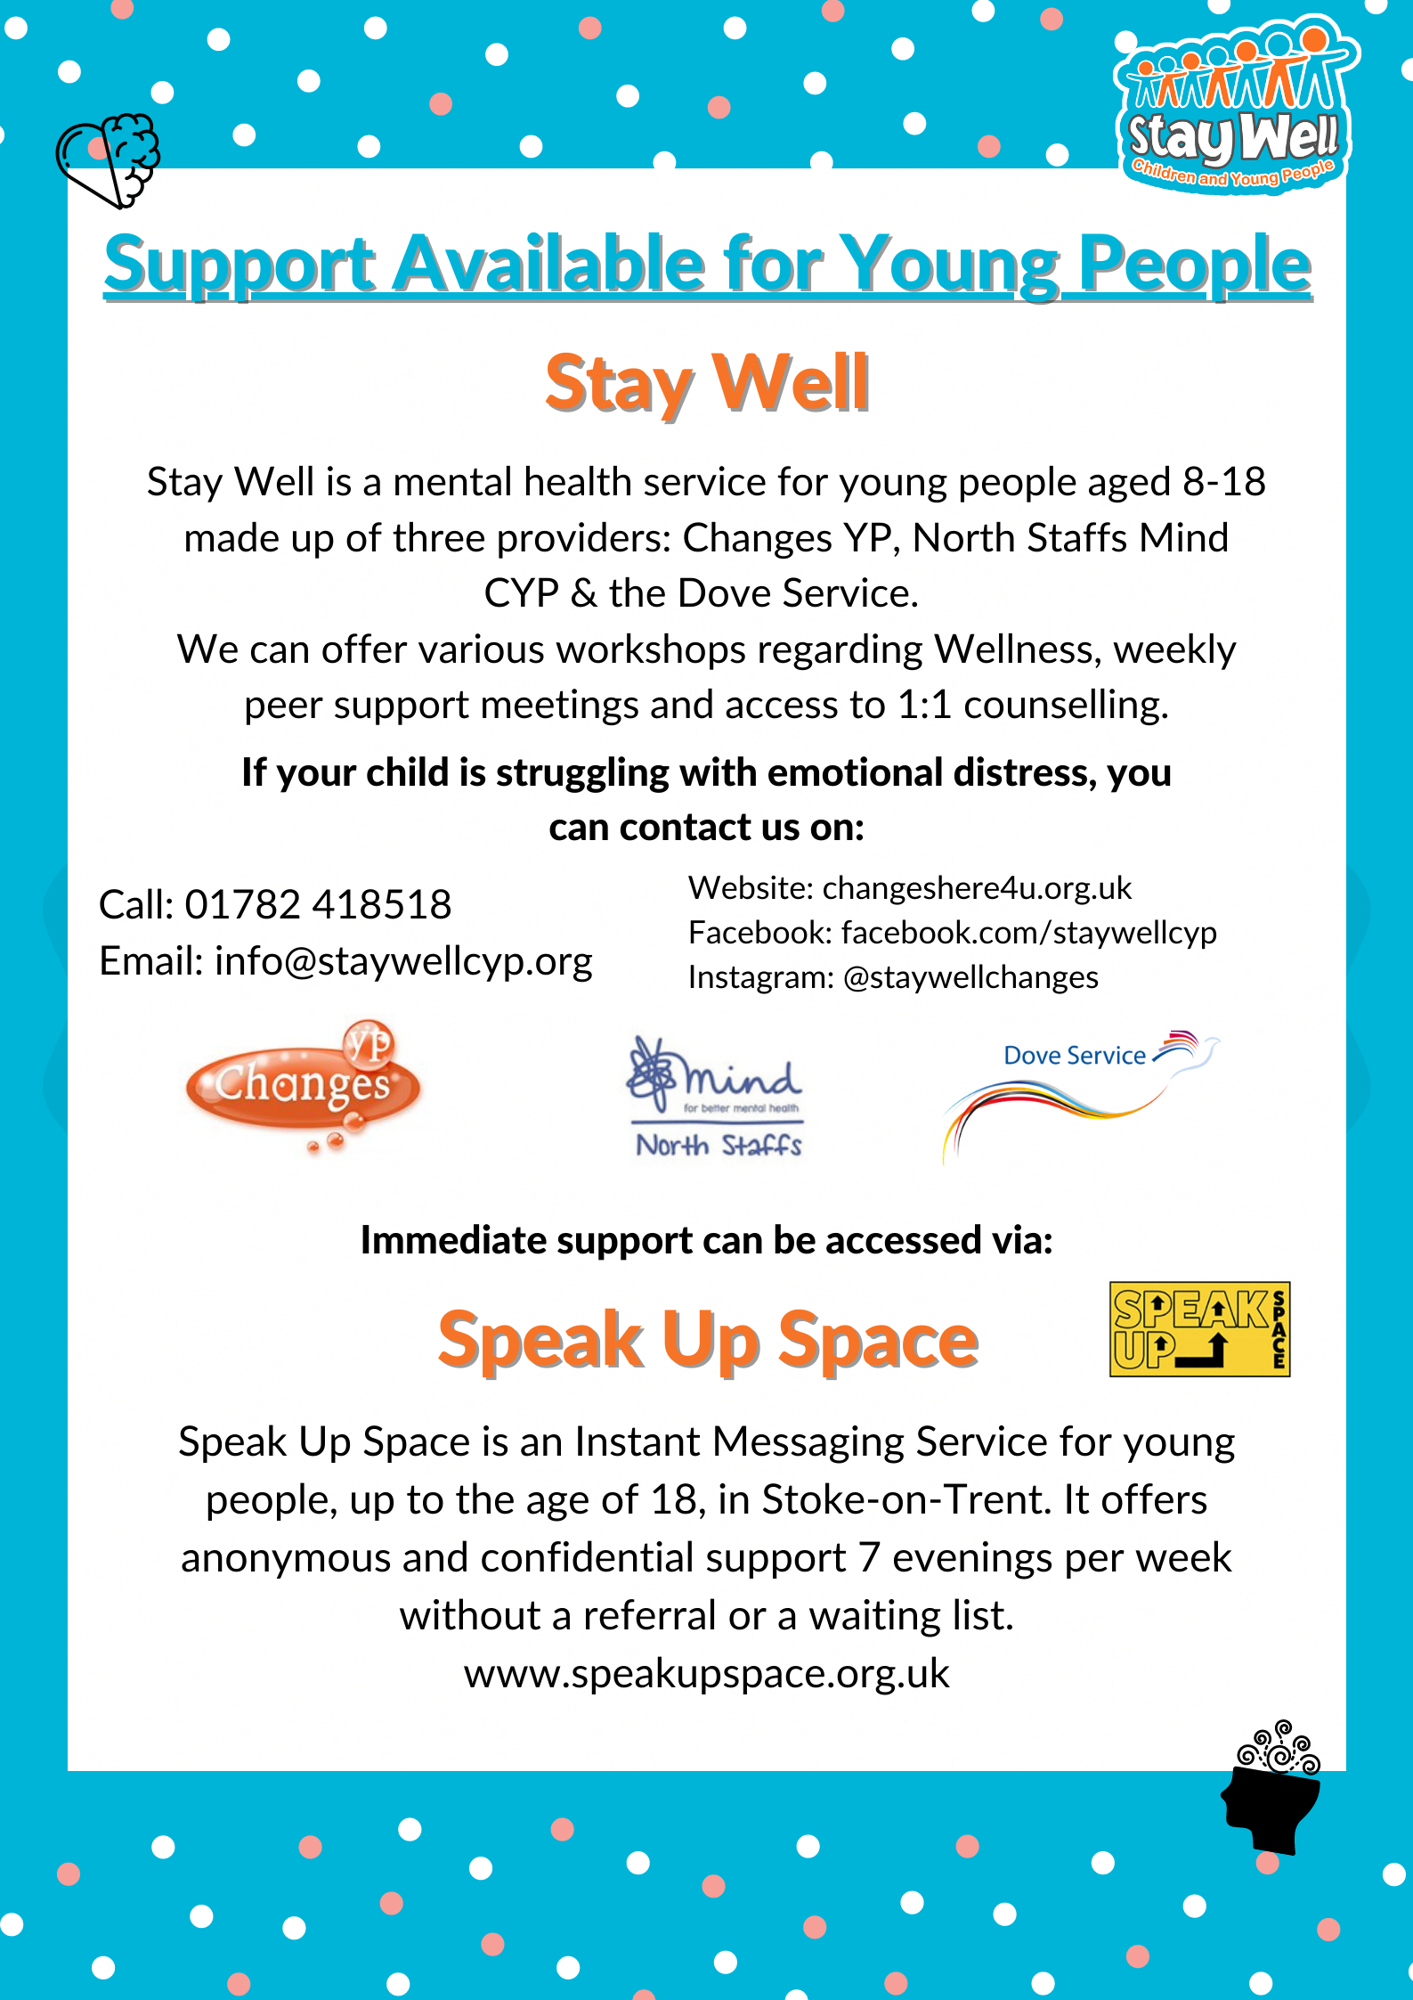 Stay well support for young people